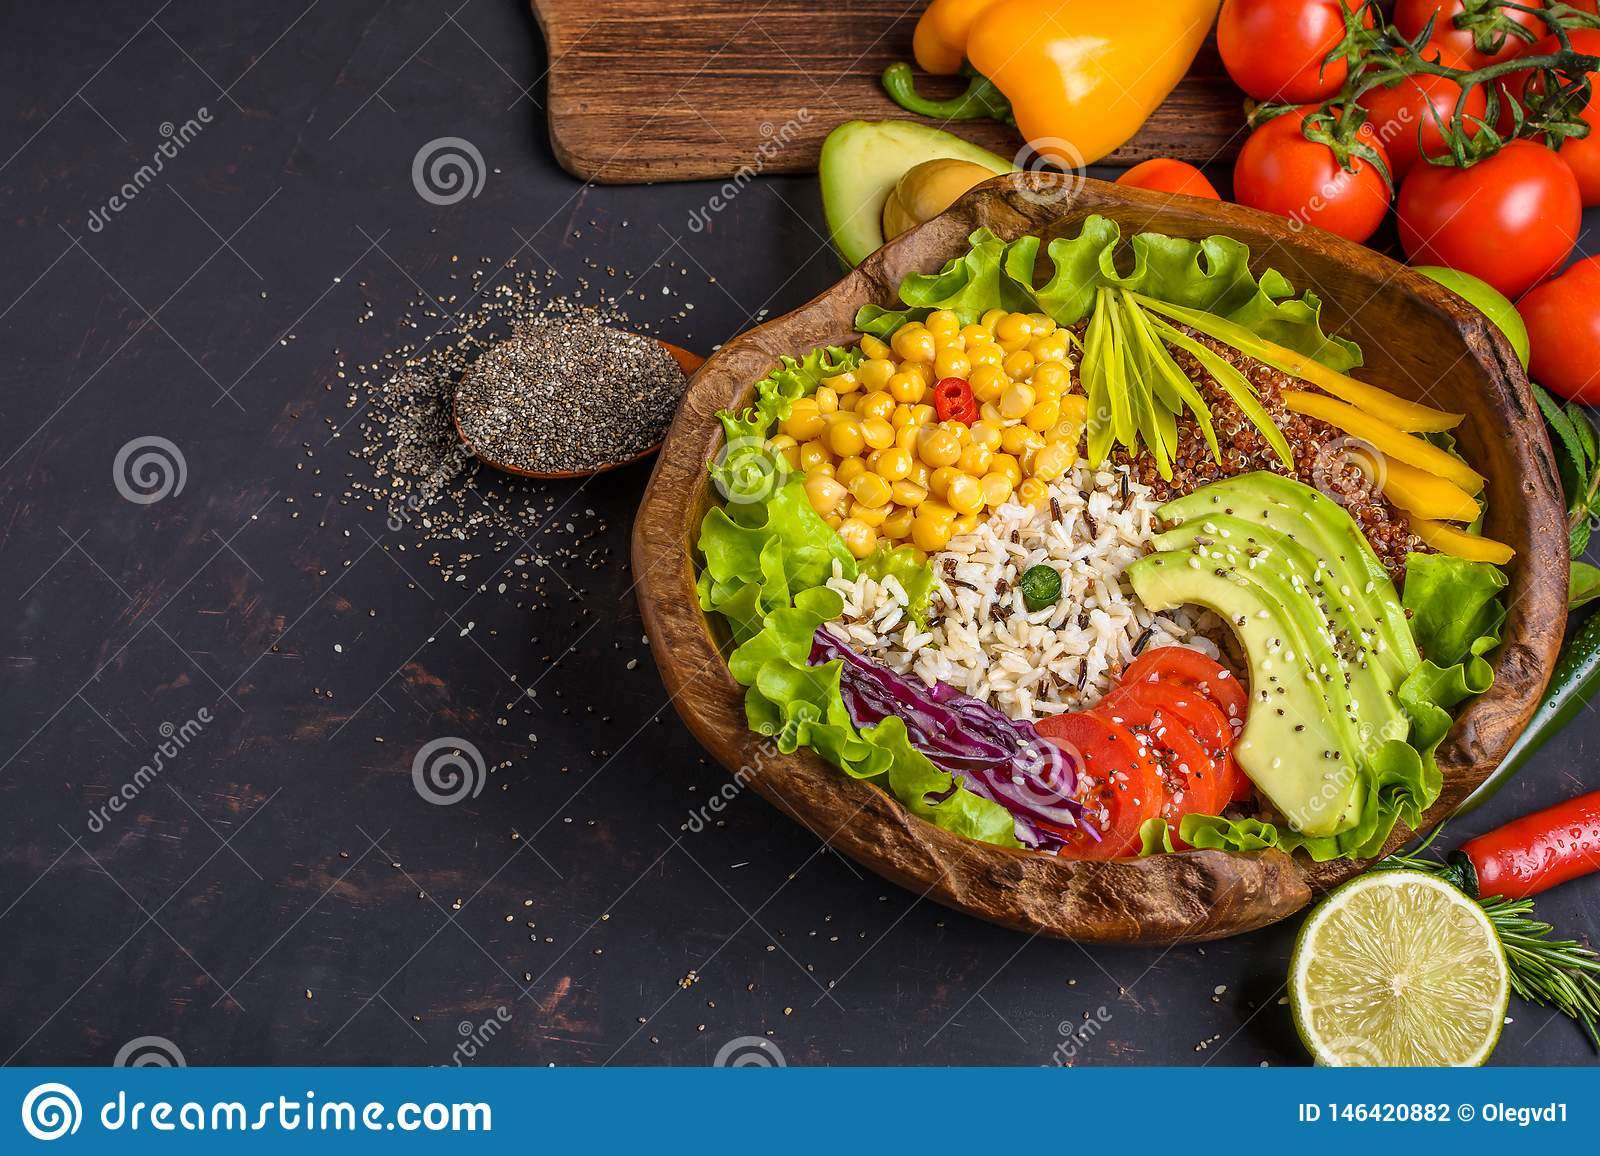 Wooden bowl with chickpea, avocado, wild rice, quinoa, bell pepper, tomatoes, greens, cabbage, lettuce on dark stone table and